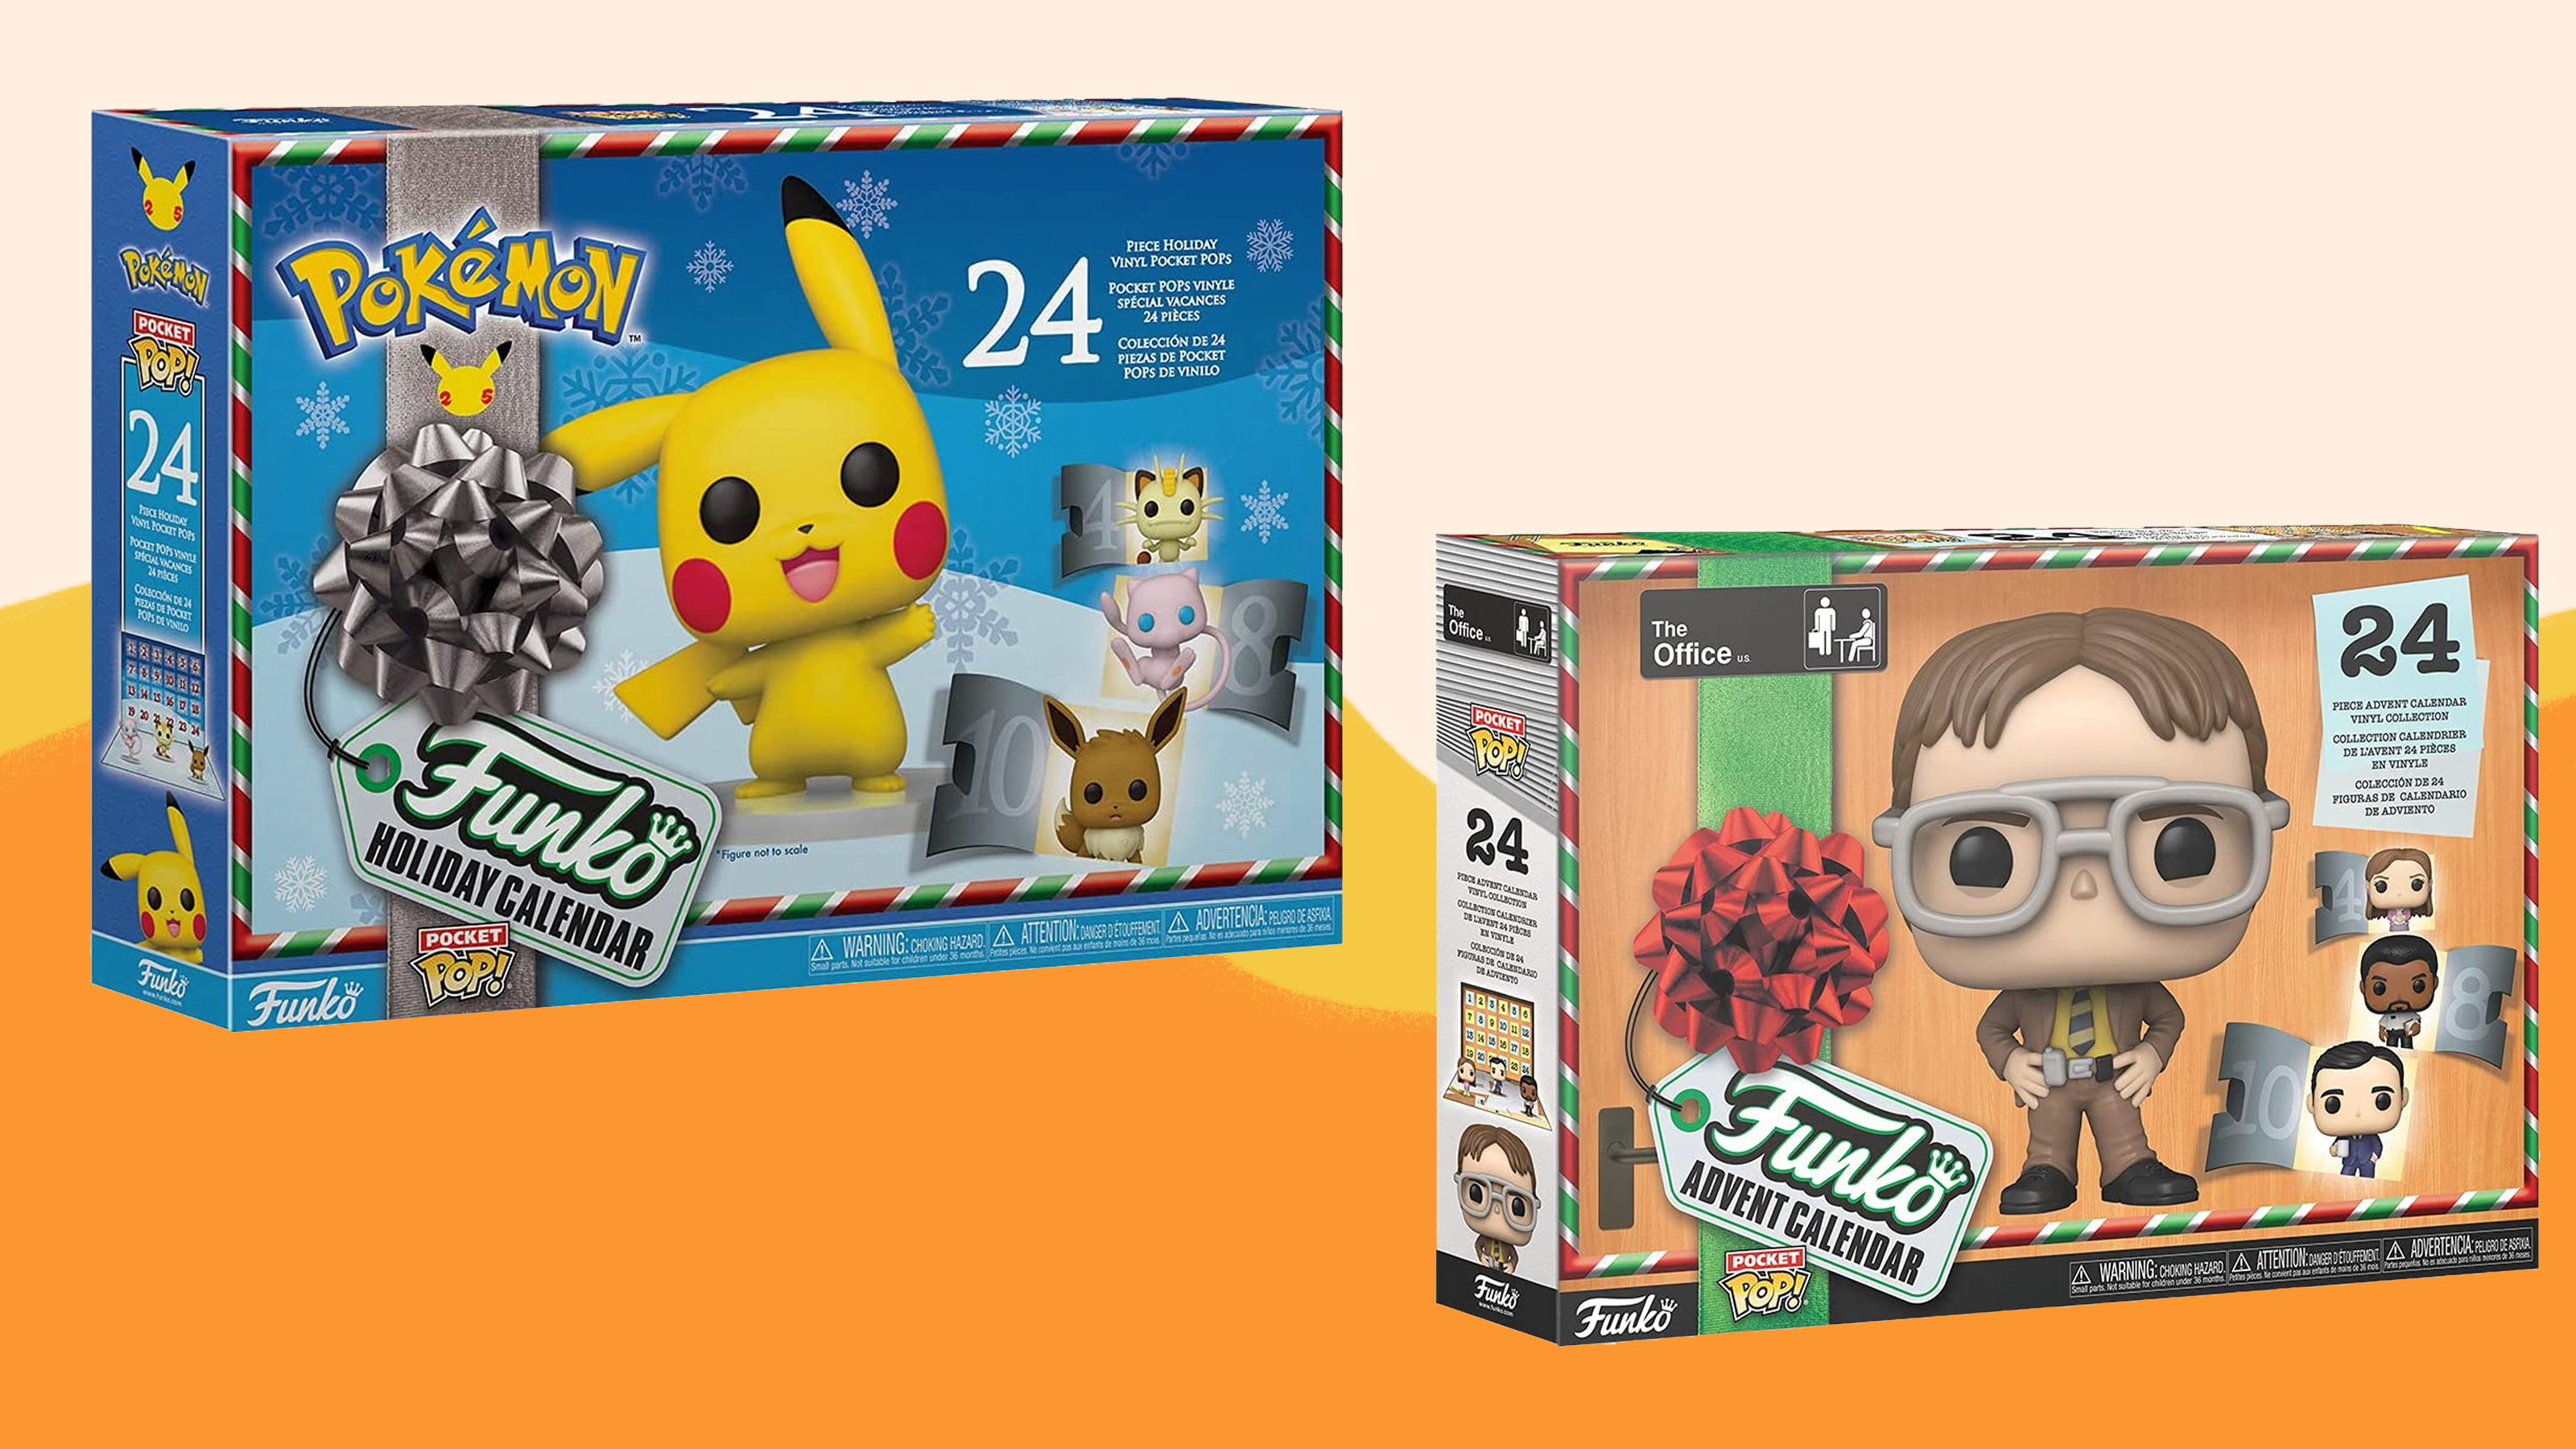 Love Funko figures? You can finally pre-order the brand's highly anticipated advent calendars